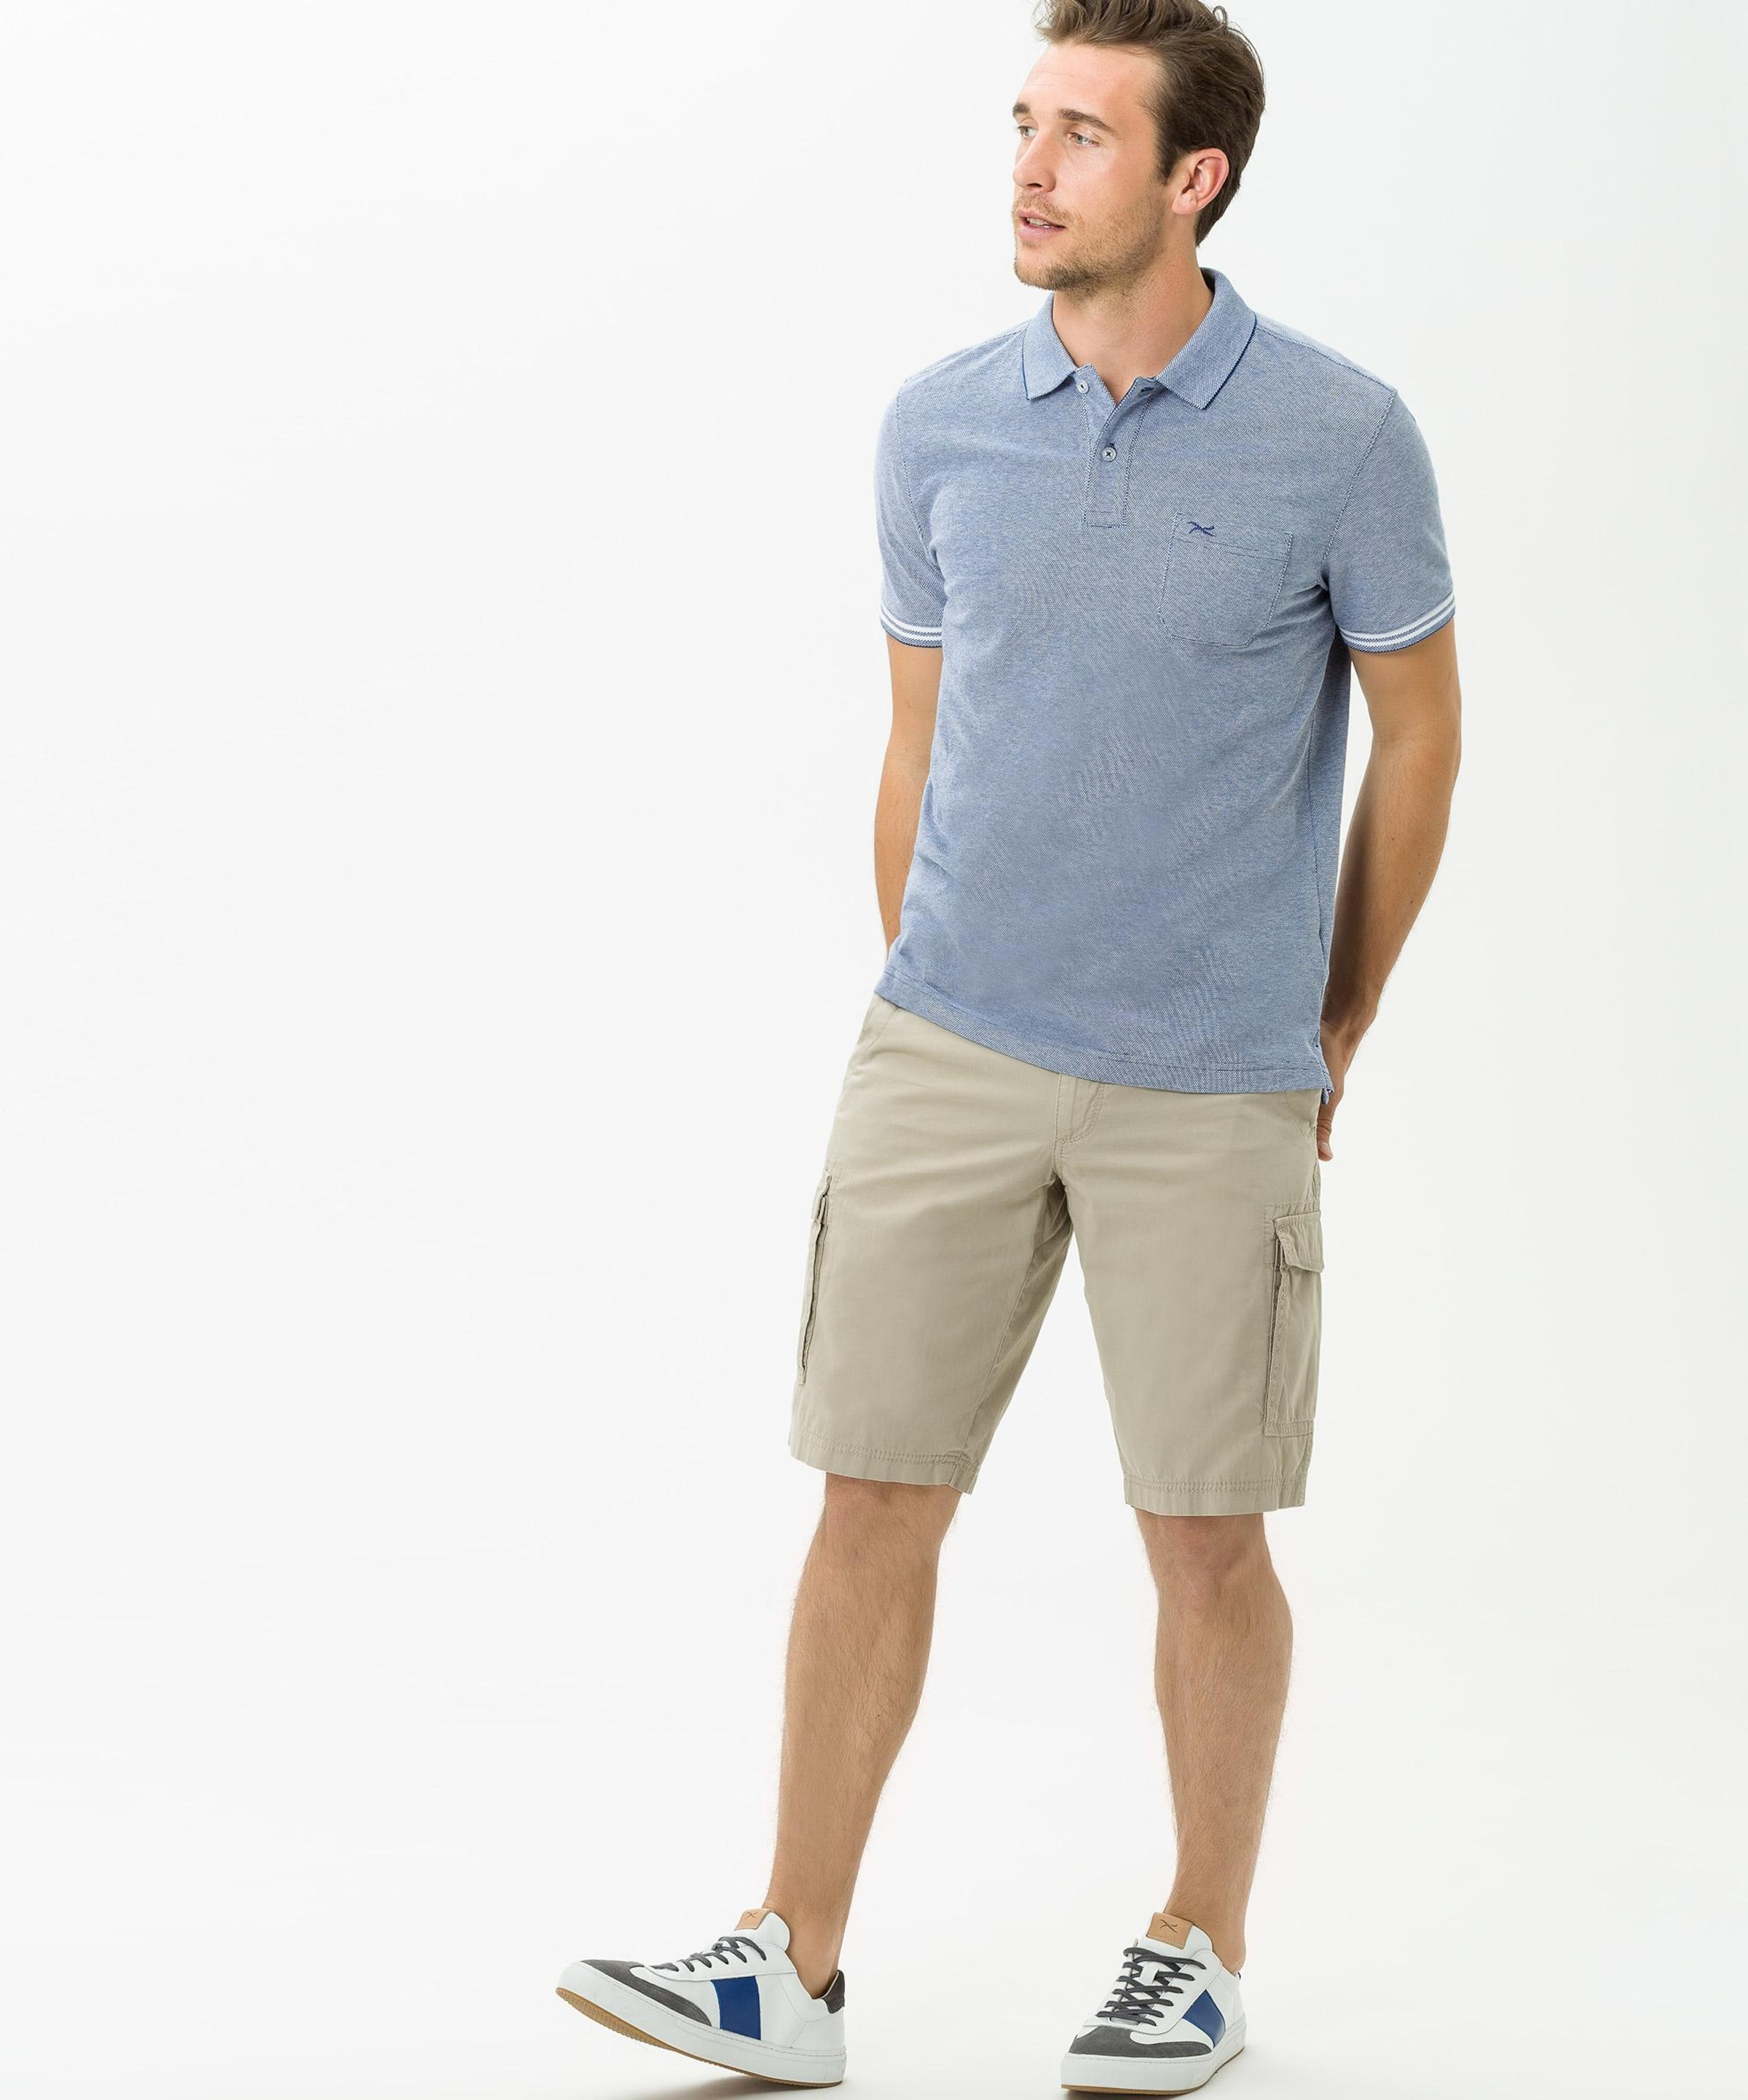 In 'paddy' RoyalblauWeiß Polo Brax Brax 8n0vNwmO